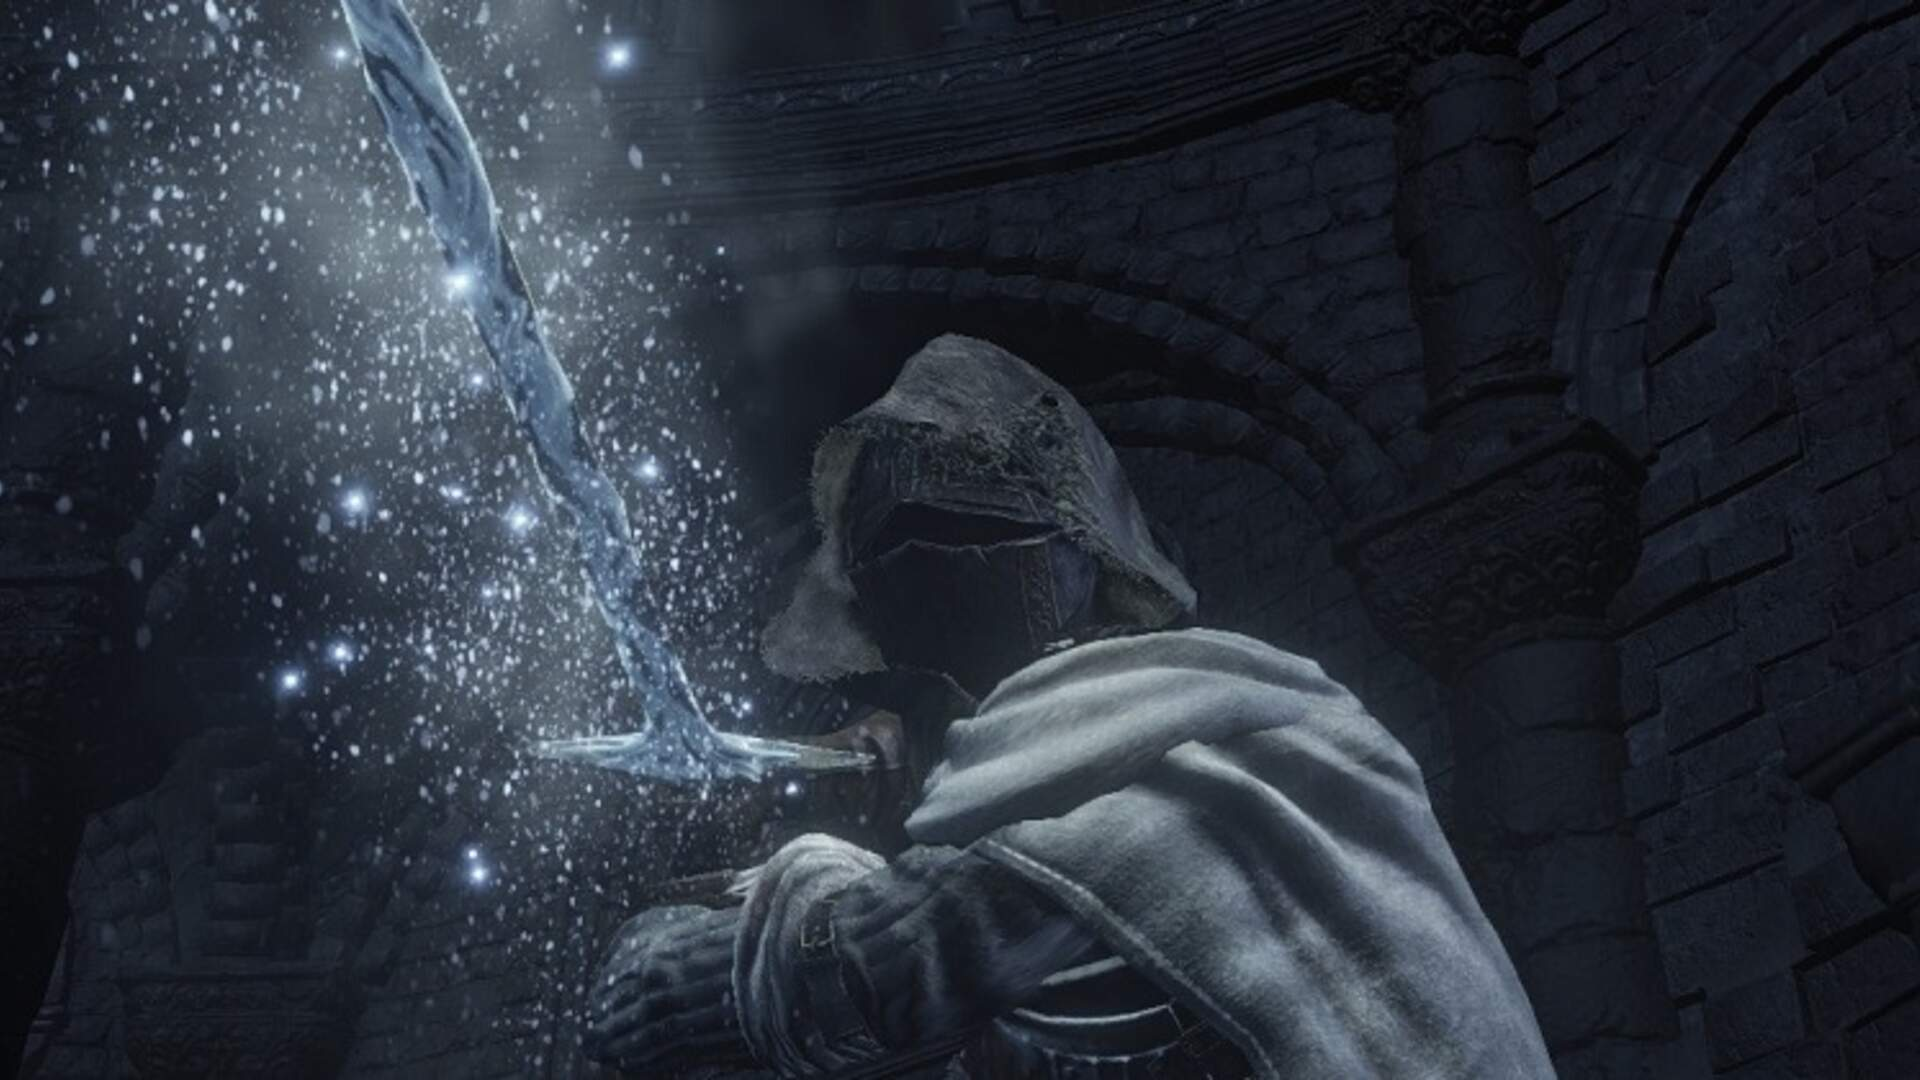 Dark Souls 3: How to Get the Irithyll Straight Sword